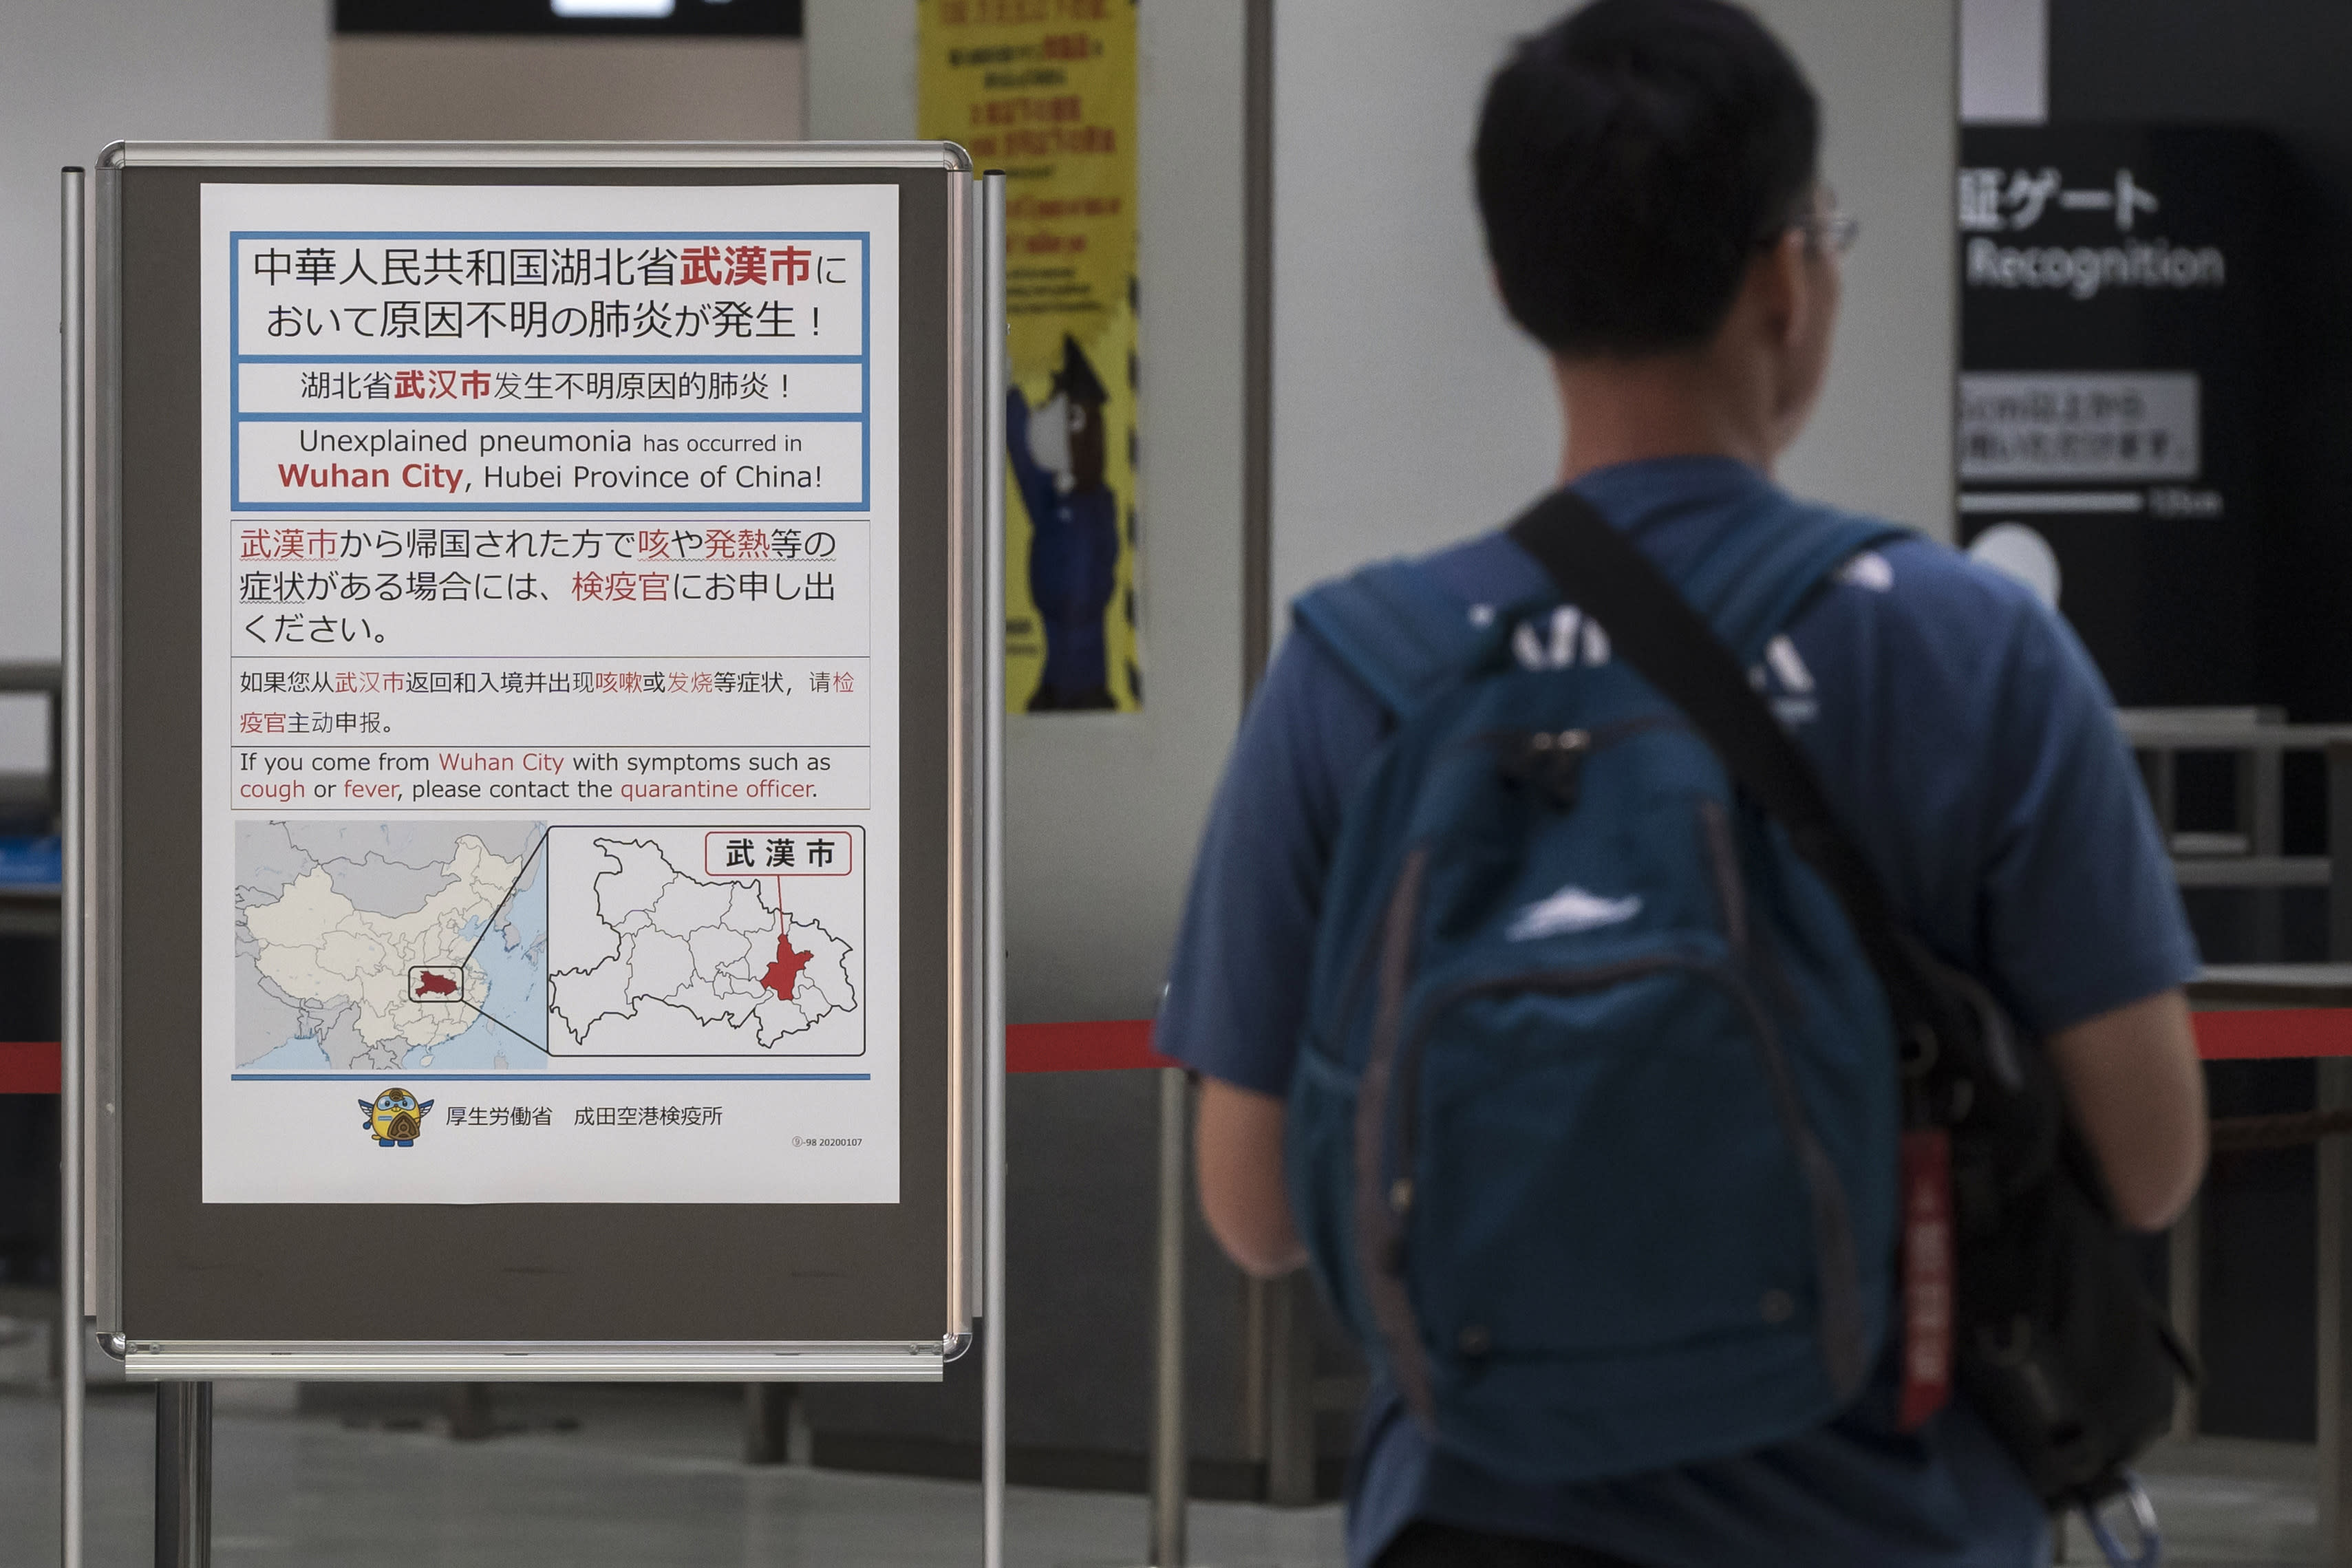 NARITA, JAPAN - JANUARY 17: A passenger walks past a notice for passengers from Wuhan, China displayed near a quarantine station at Narita airport on January 17, 2020 in Narita, Japan. Japan's Ministry of Health, Labour and Welfare confirmed yesterday its first case of pneumonia infected with a new coronavirus from Wuhan City, China. (Photo by Tomohiro Ohsumi/Getty Images)